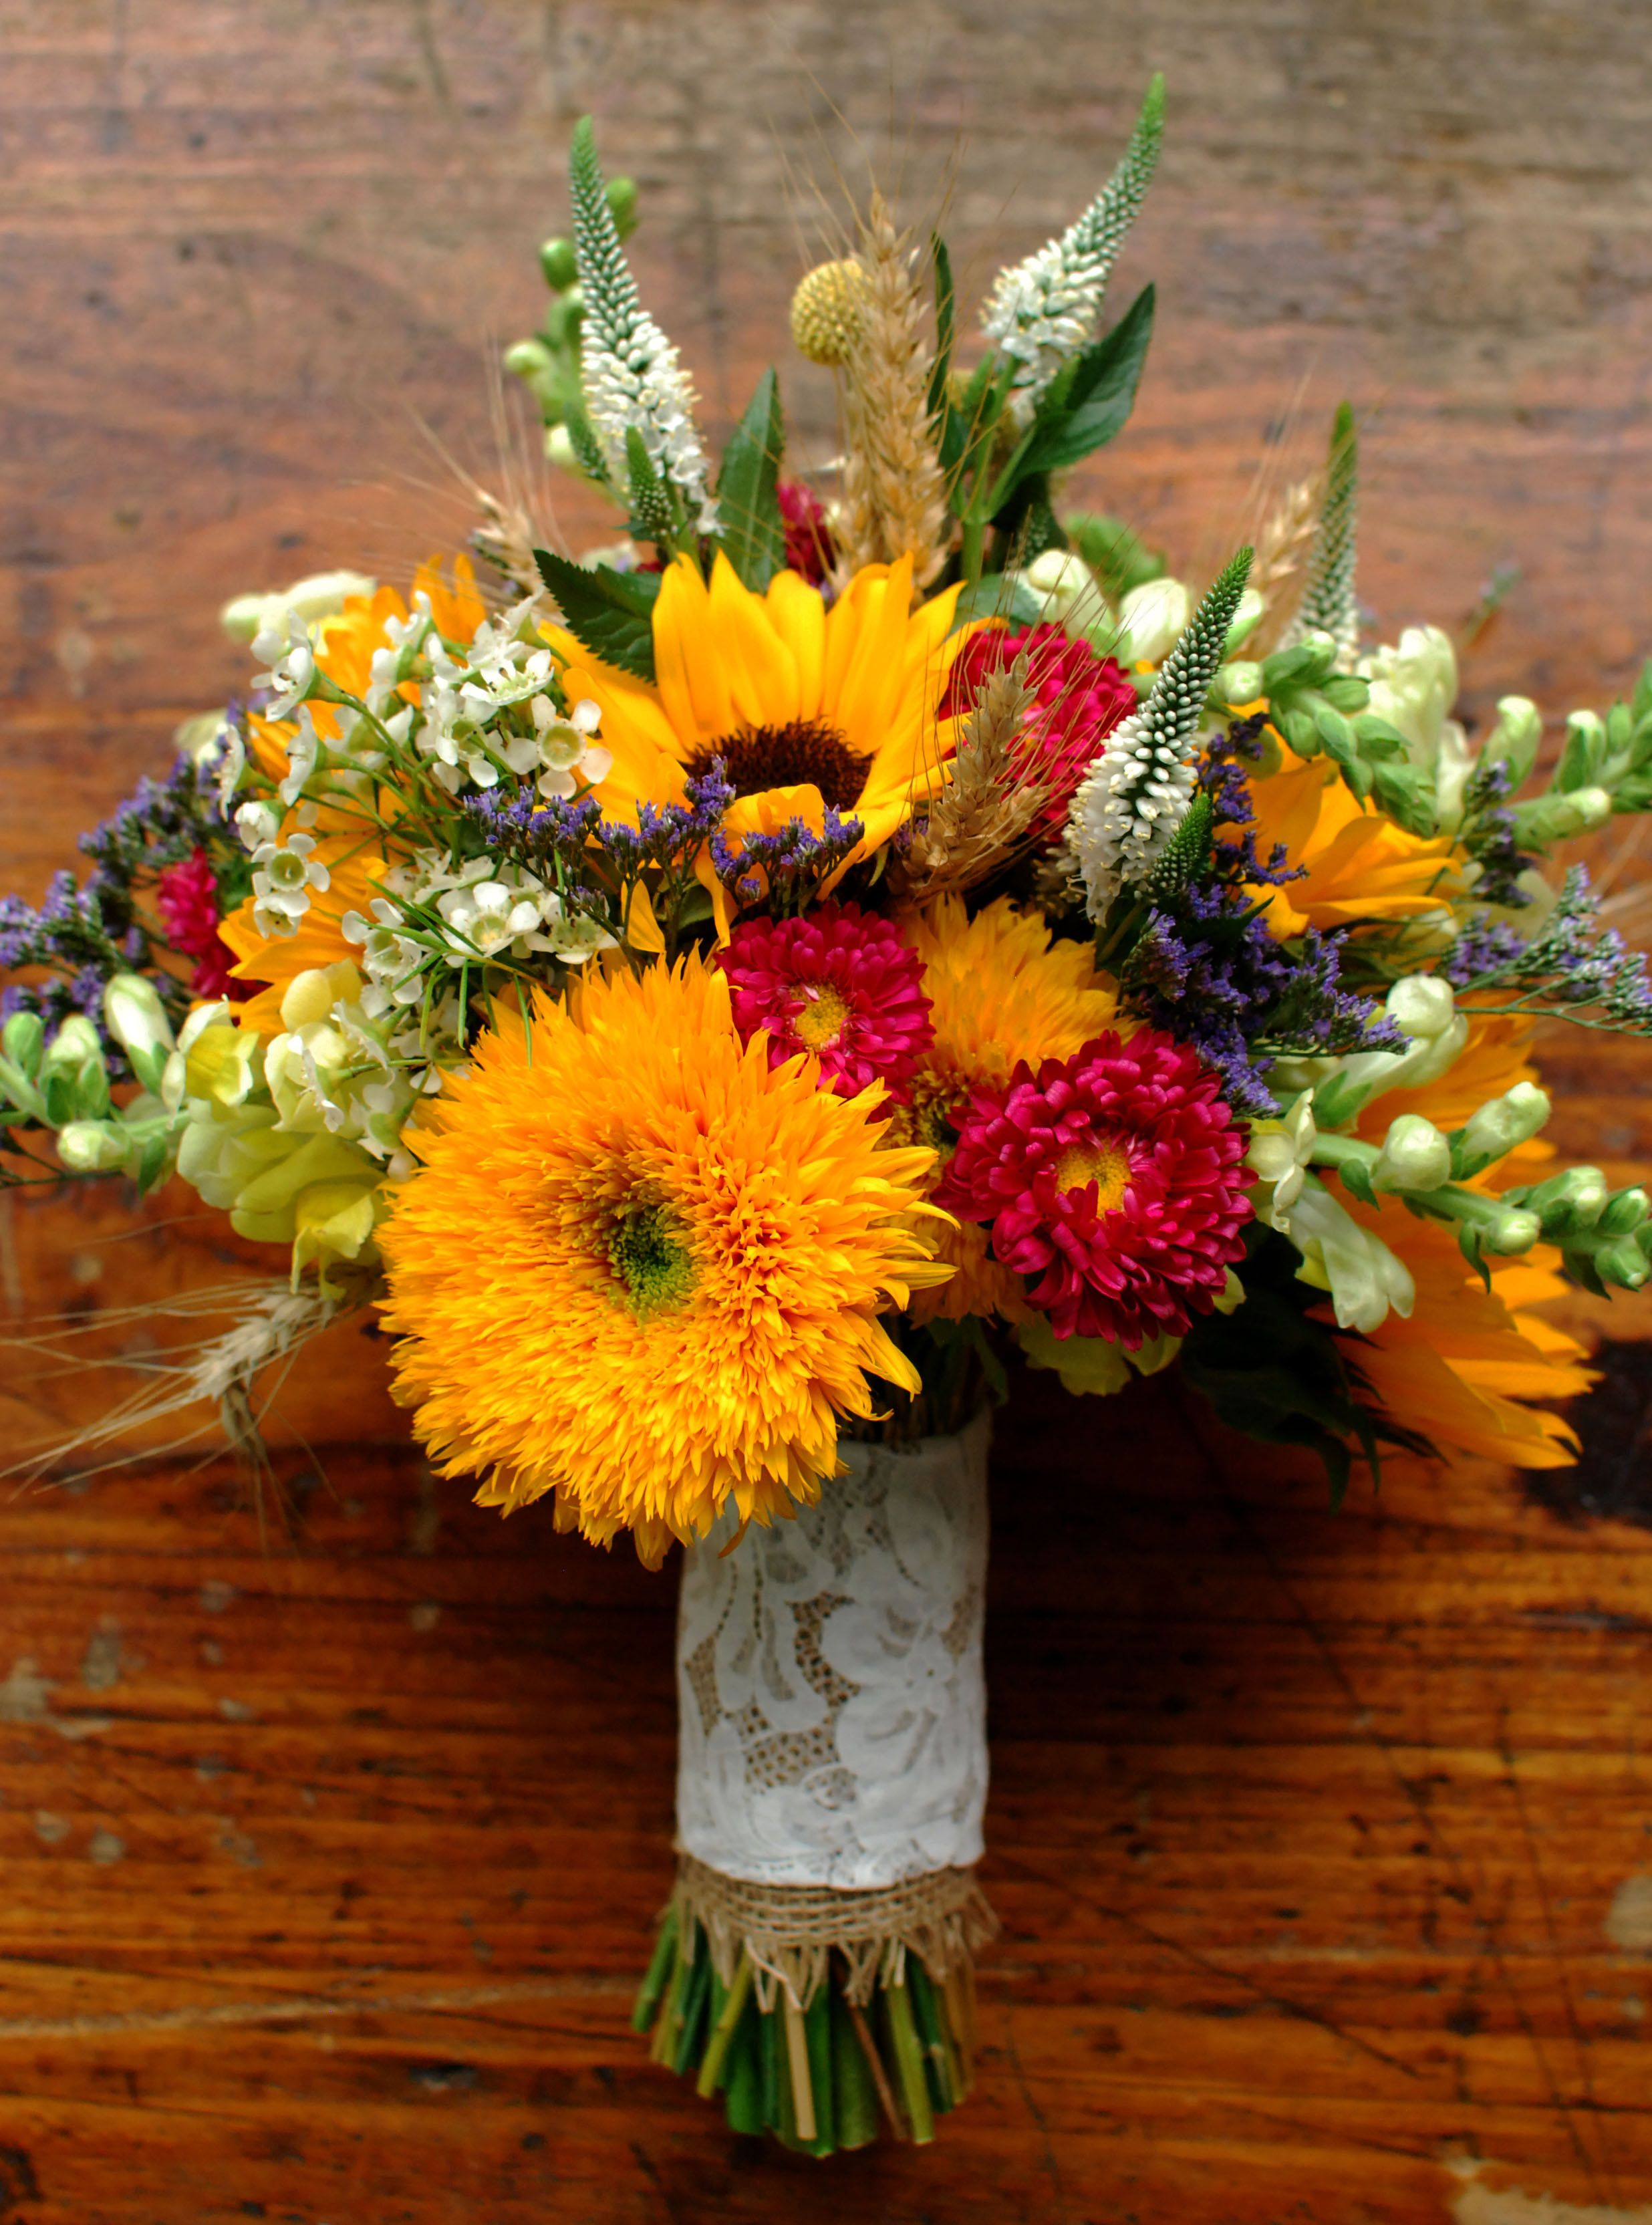 Early Autumn bridal bouquet, Sunflowers, aster, wheat, wax